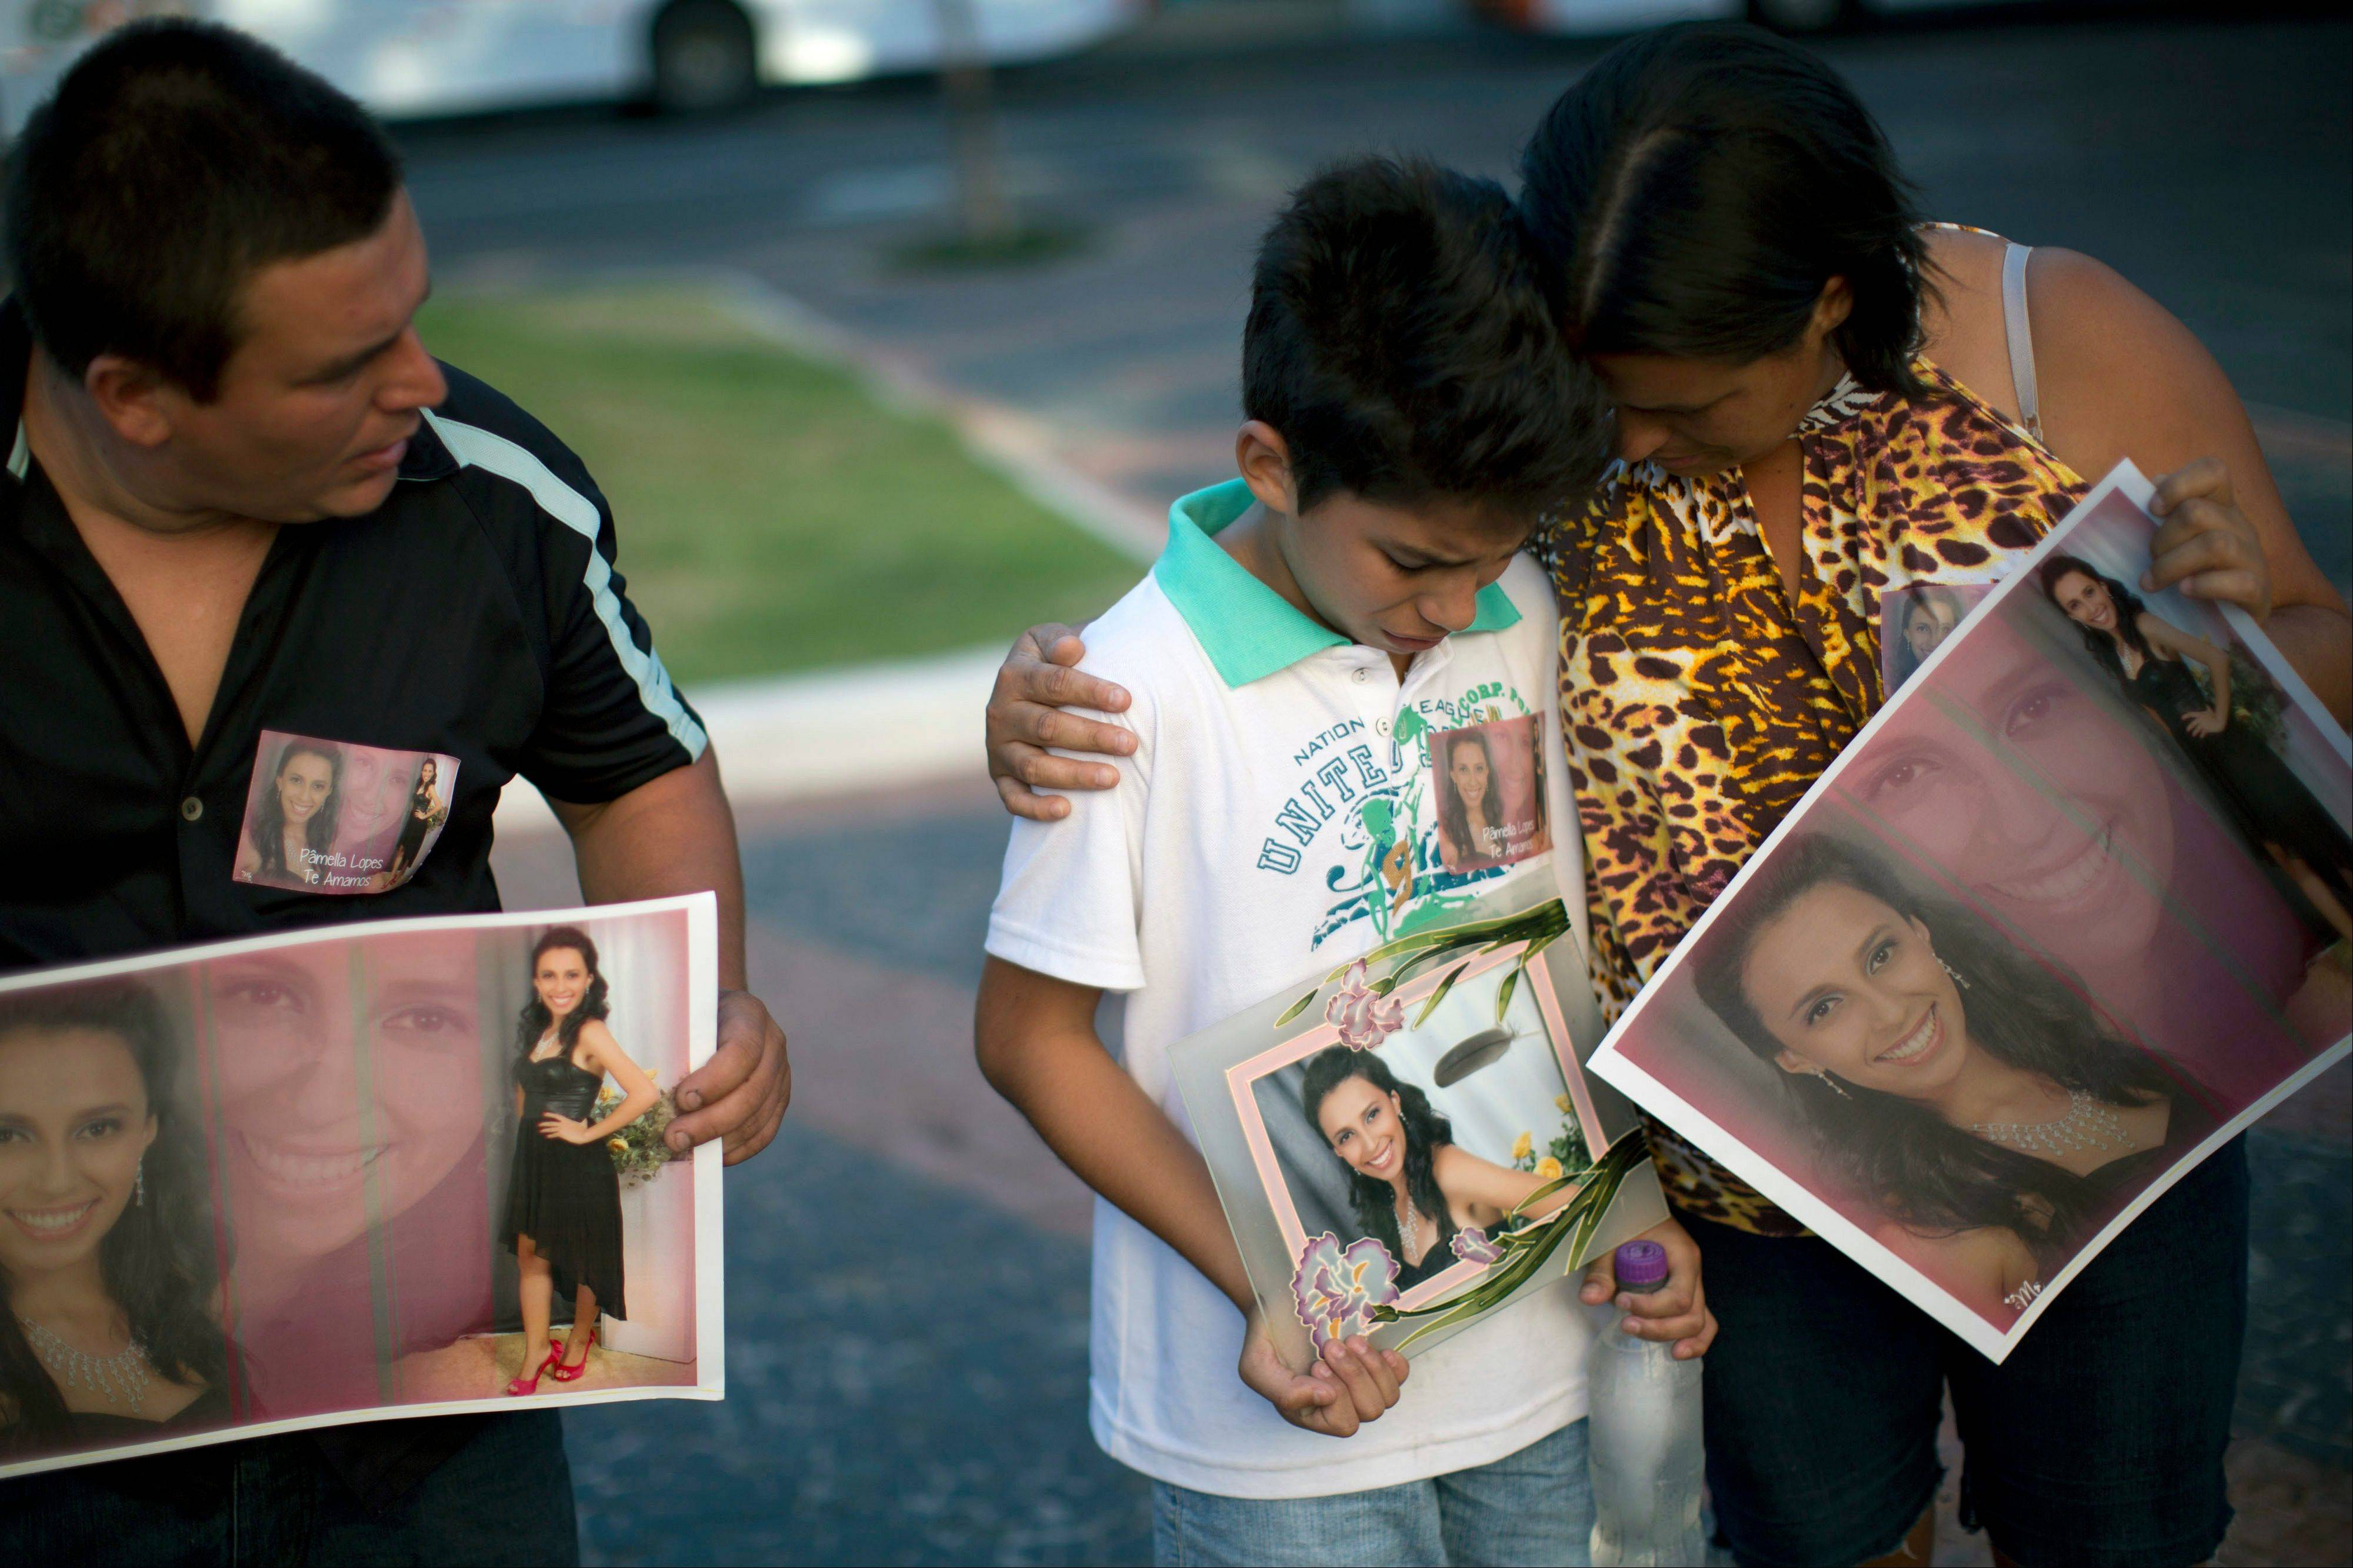 Relatives hold photographs of Pamella Lopes, who died in a nightclub fire, as they stand a public square near the nightclub in Santa Maria, Brazil, Monday.